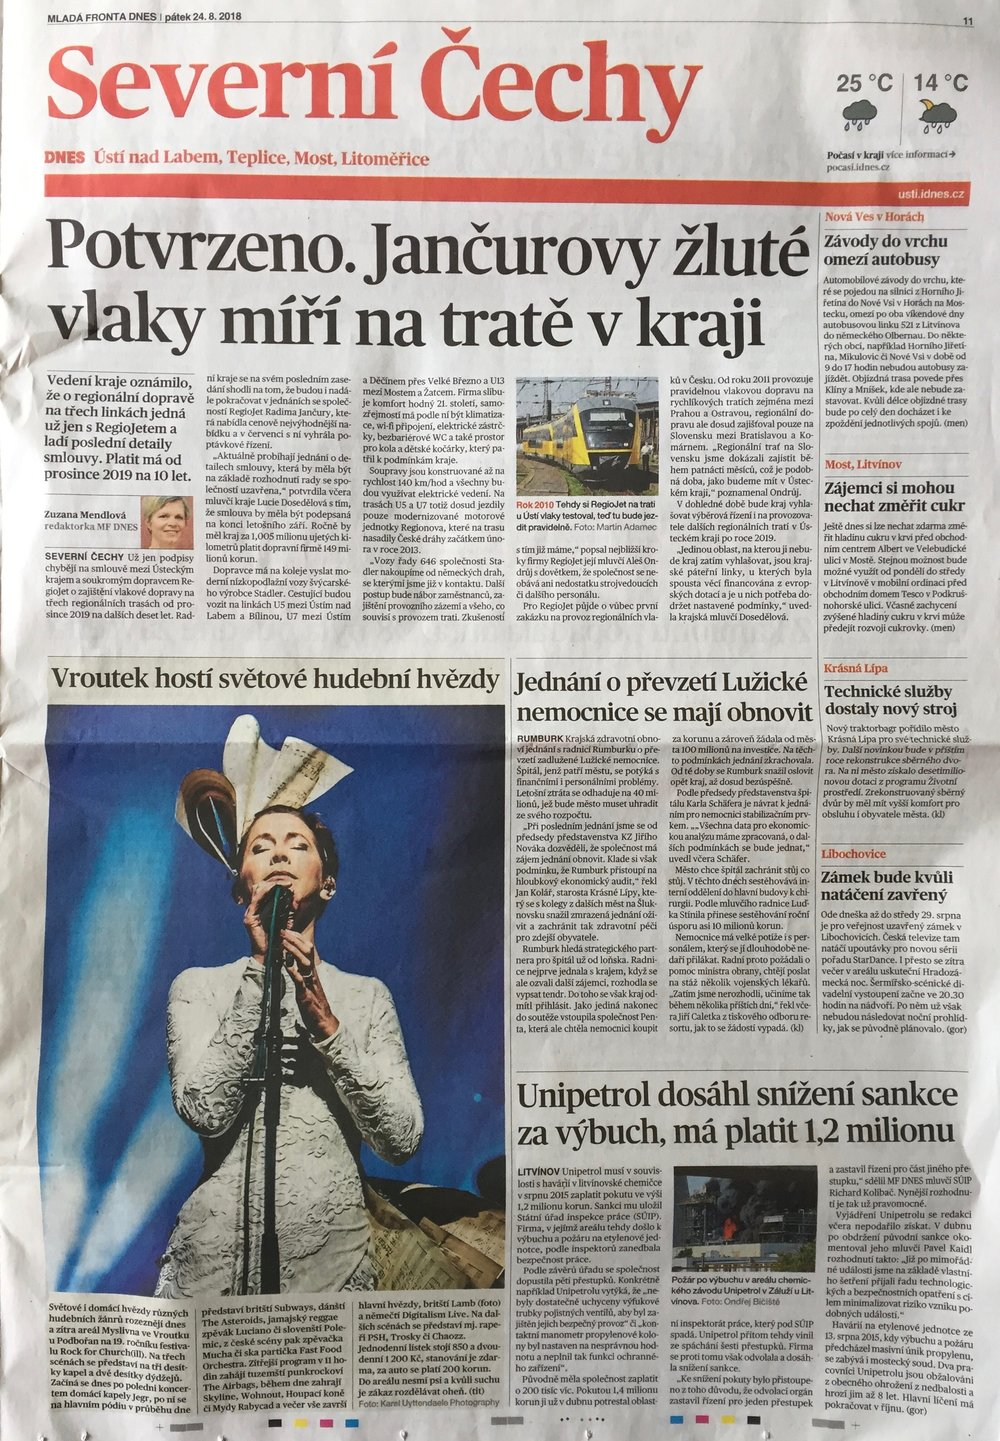 Lamb in MF DNES Severni Cechy (newspaper in Czech Republic)